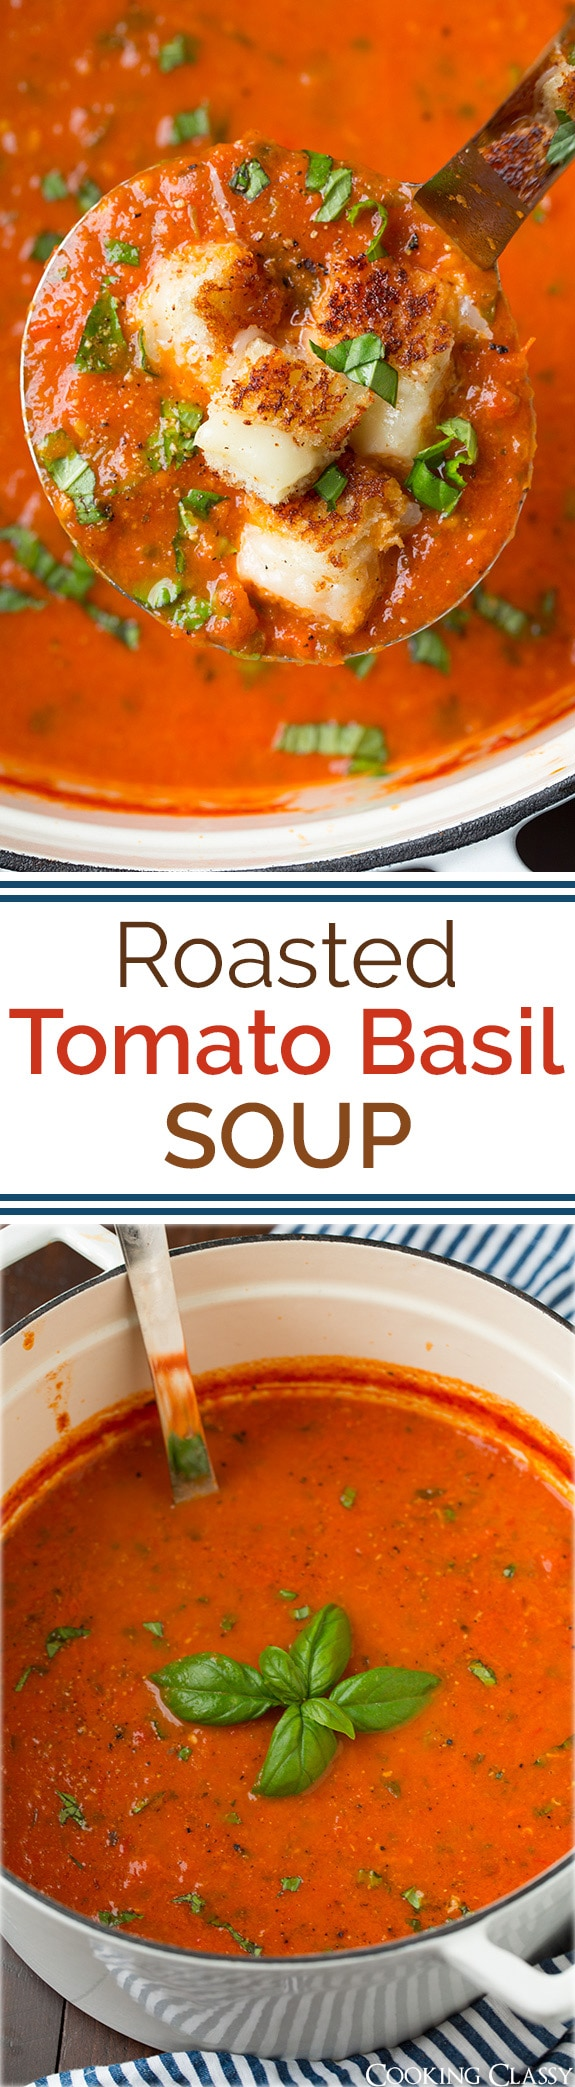 Roasted Tomato Basil Soup | Cooking Classy | Bloglovin'